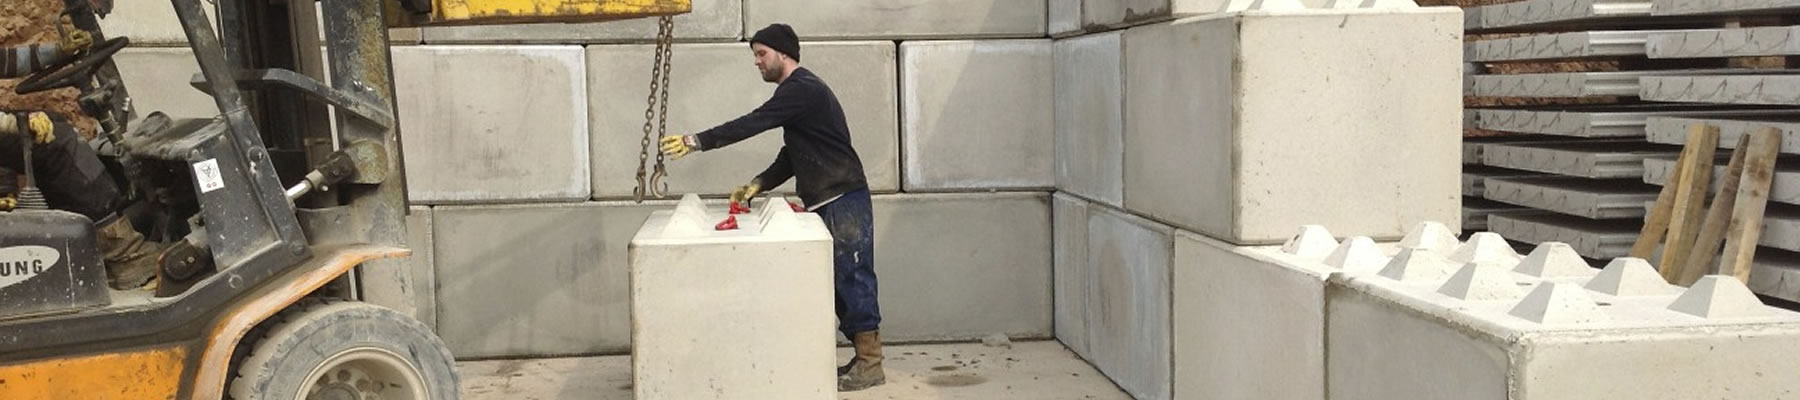 blok-it interlocking lego style concrete block specialist